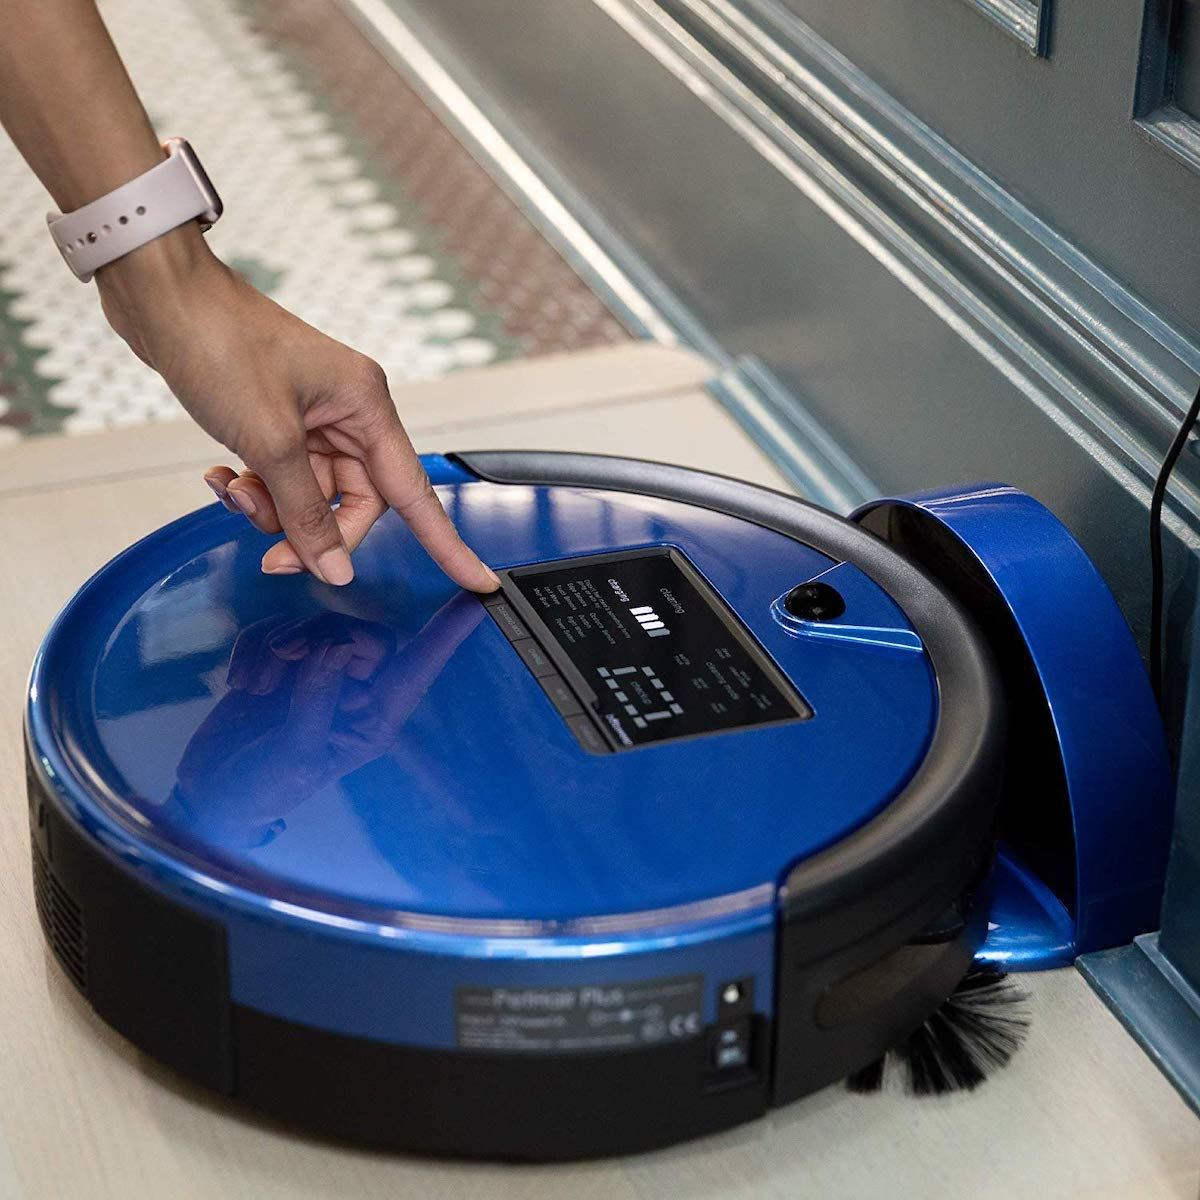 bObsweep bObi Pet Robotic Vacuum Cleaner & Mop in Blue